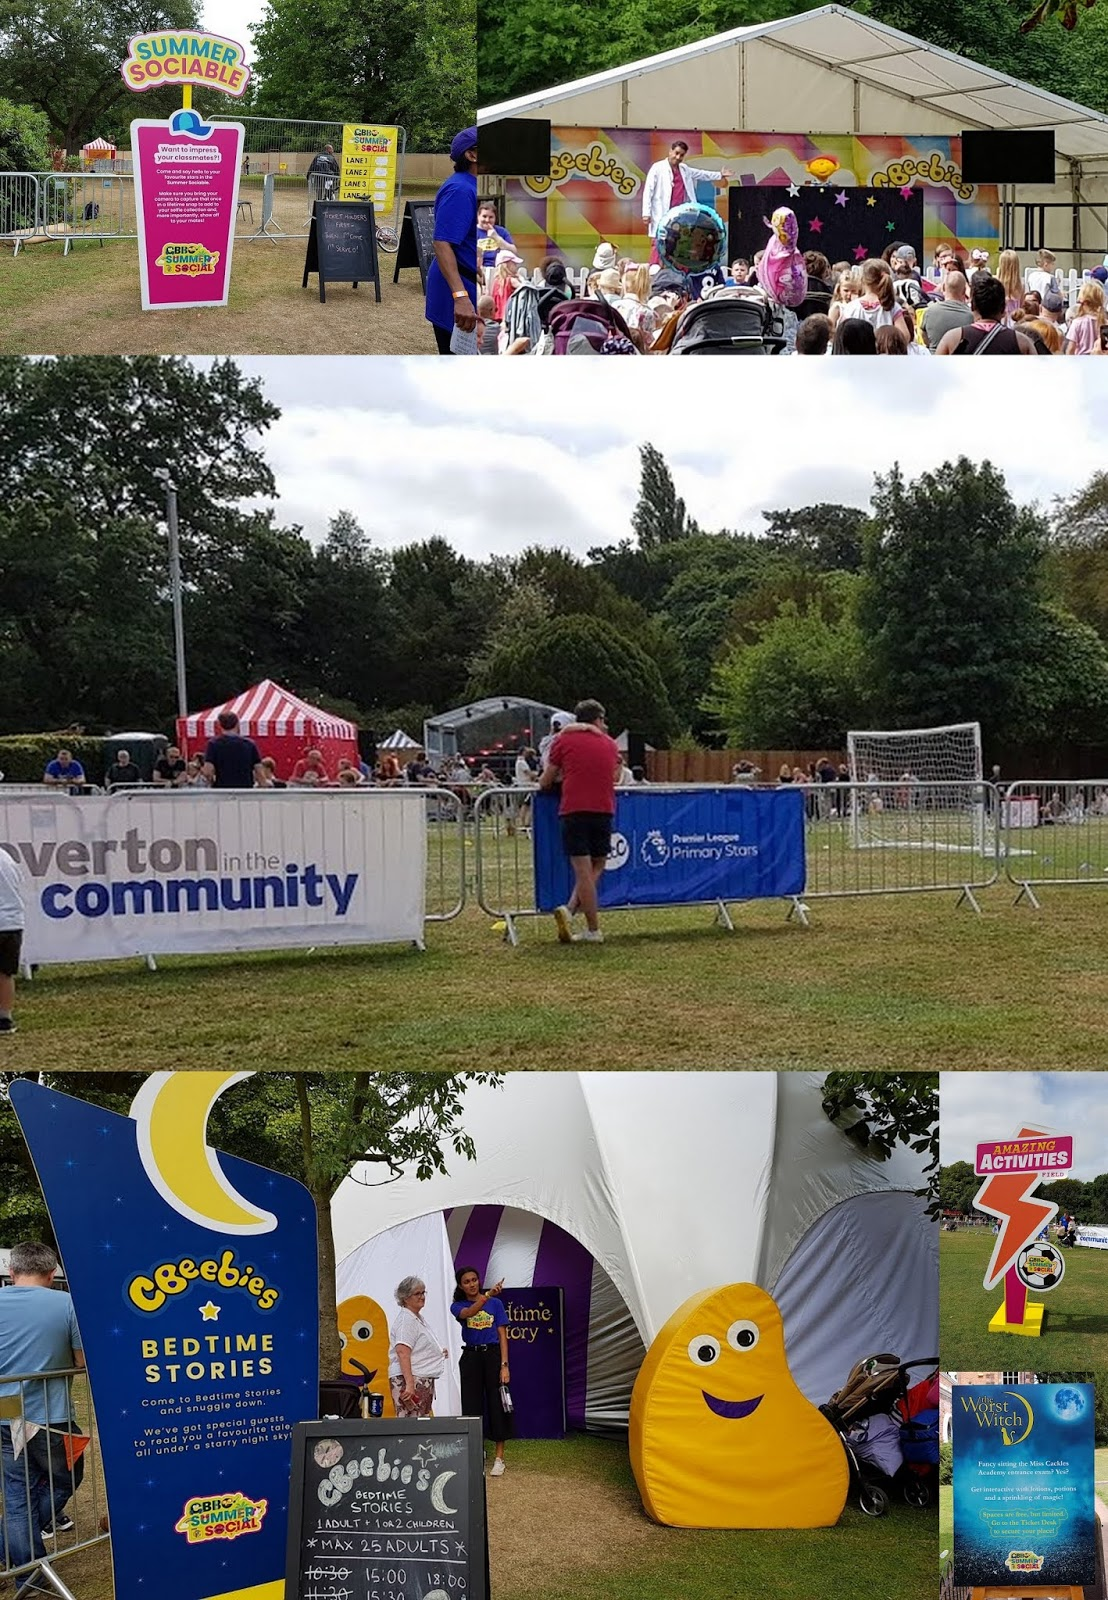 The Brick Castle Cbbc Summer Social Review 2018 Croxteth Hall And